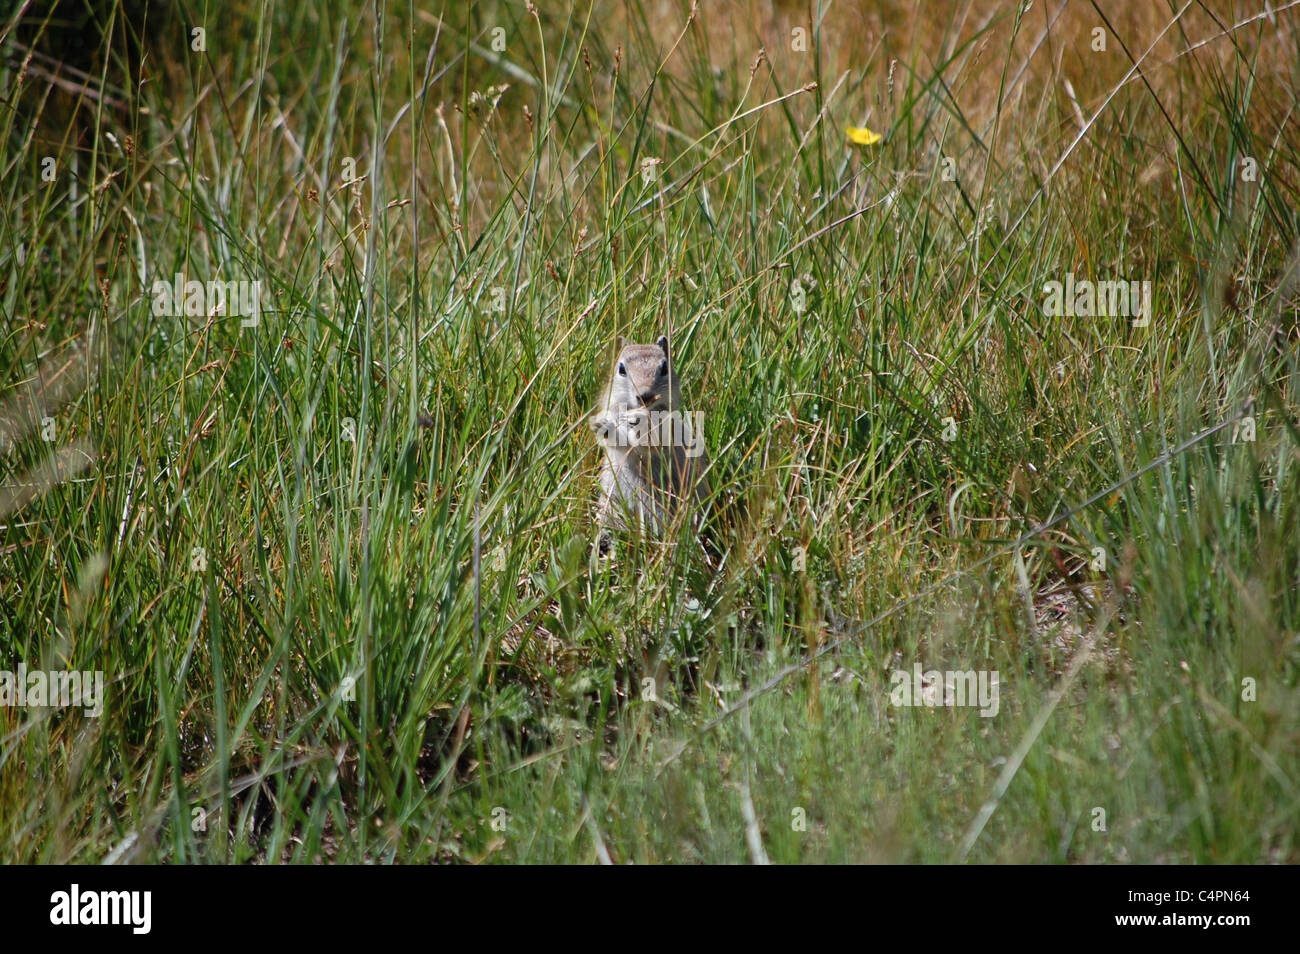 young marmot in the grasses of yosemite national park - Stock Image